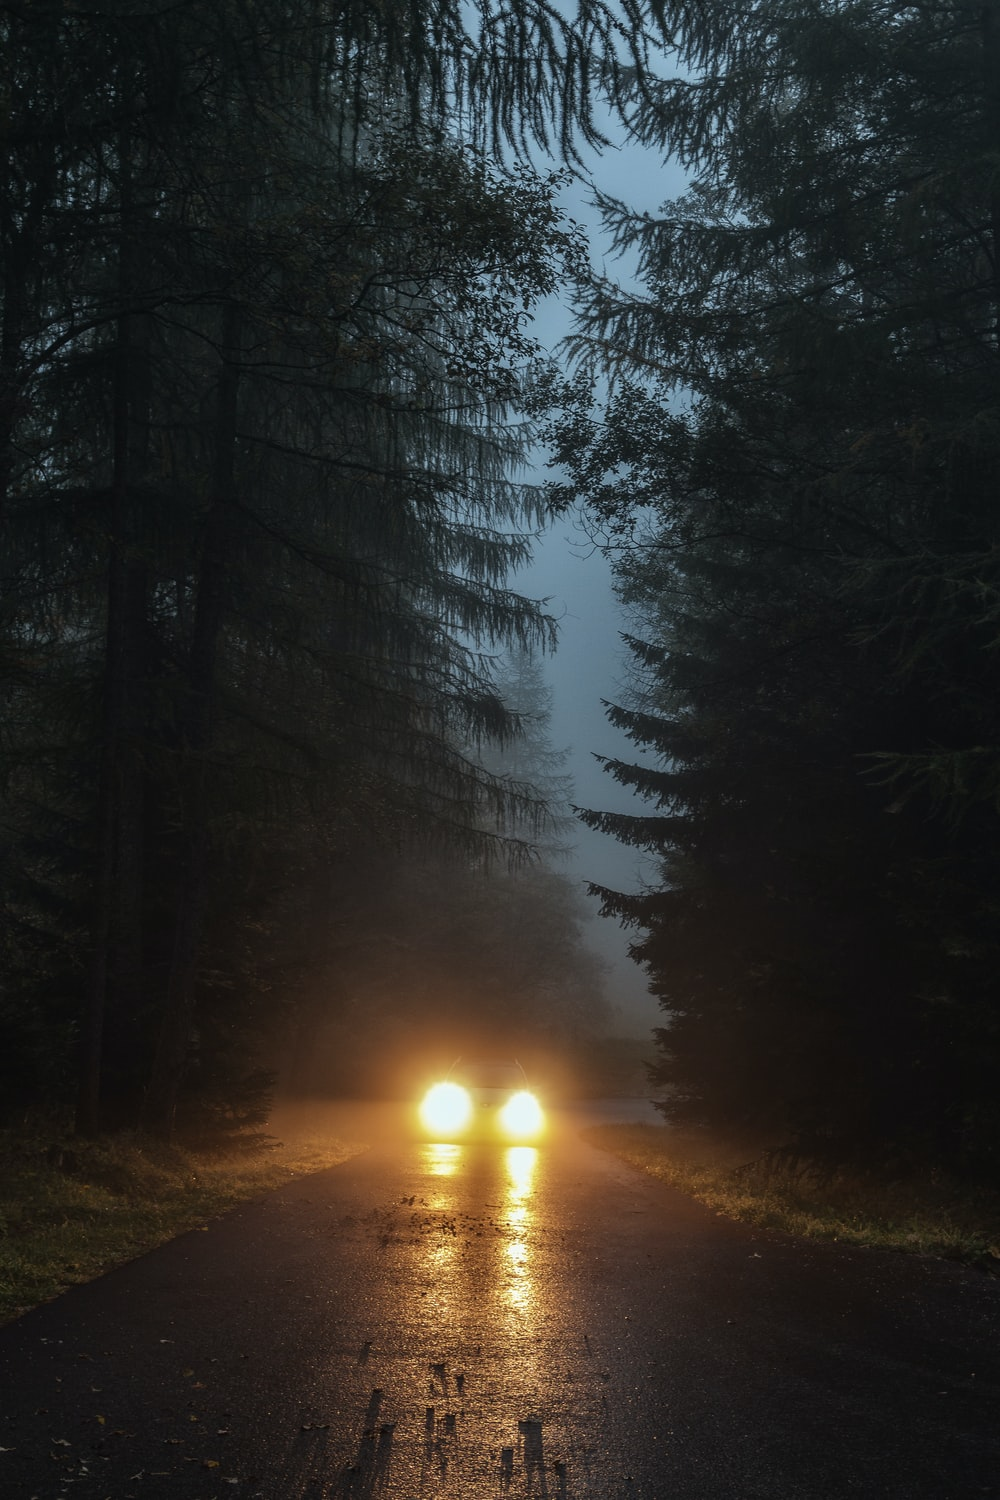 car driving in foggy forest during nighttime